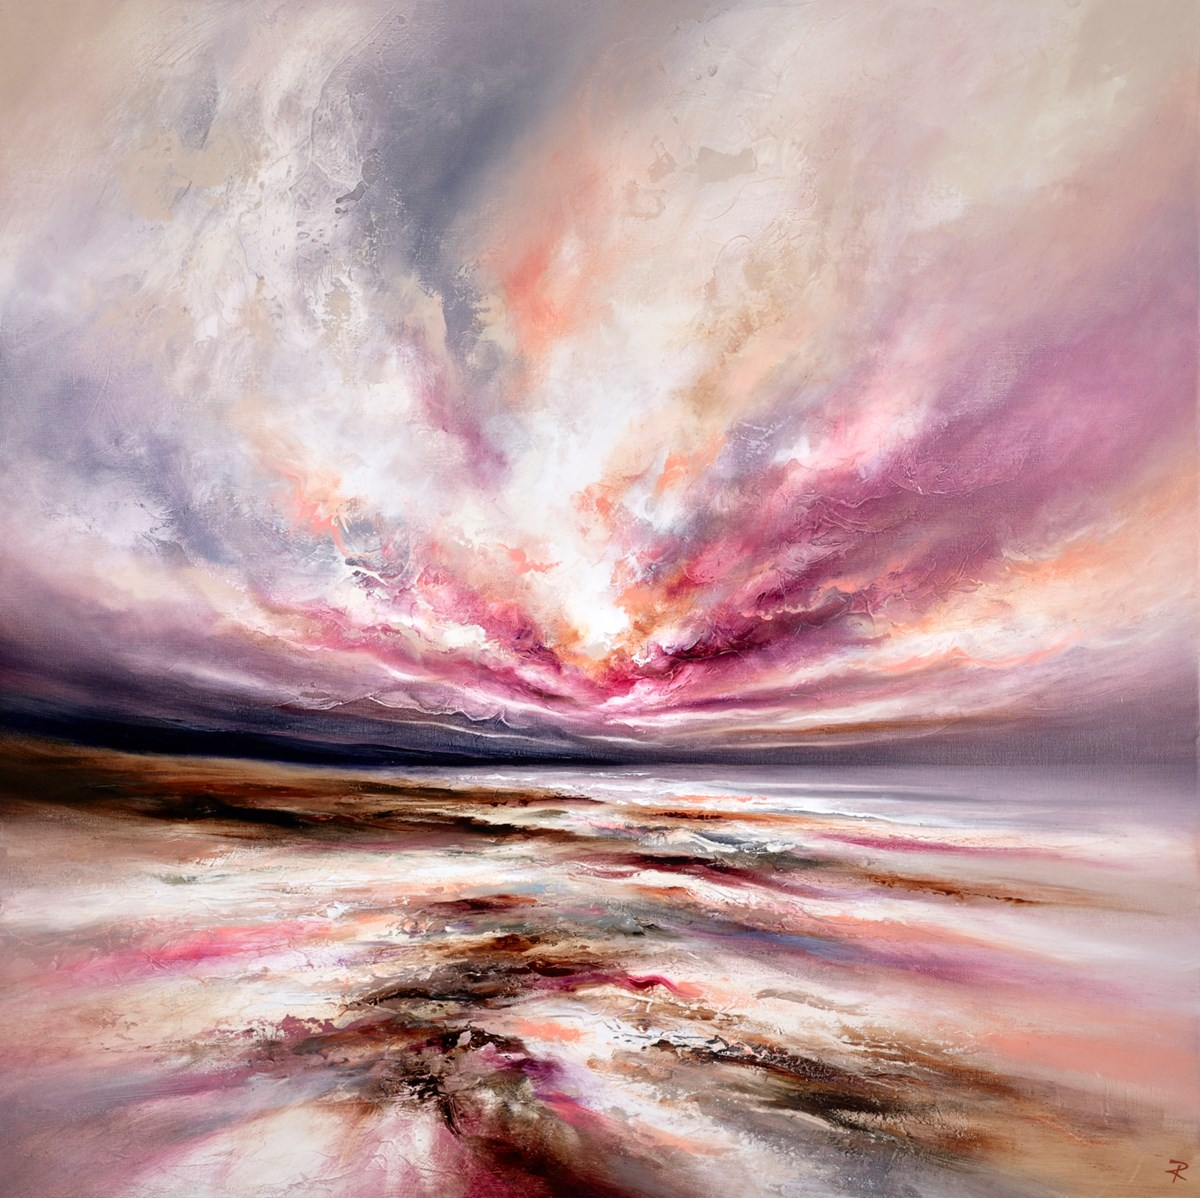 Twilight Grace by chris and steve rocks -  sized 39x39 inches. Available from Whitewall Galleries